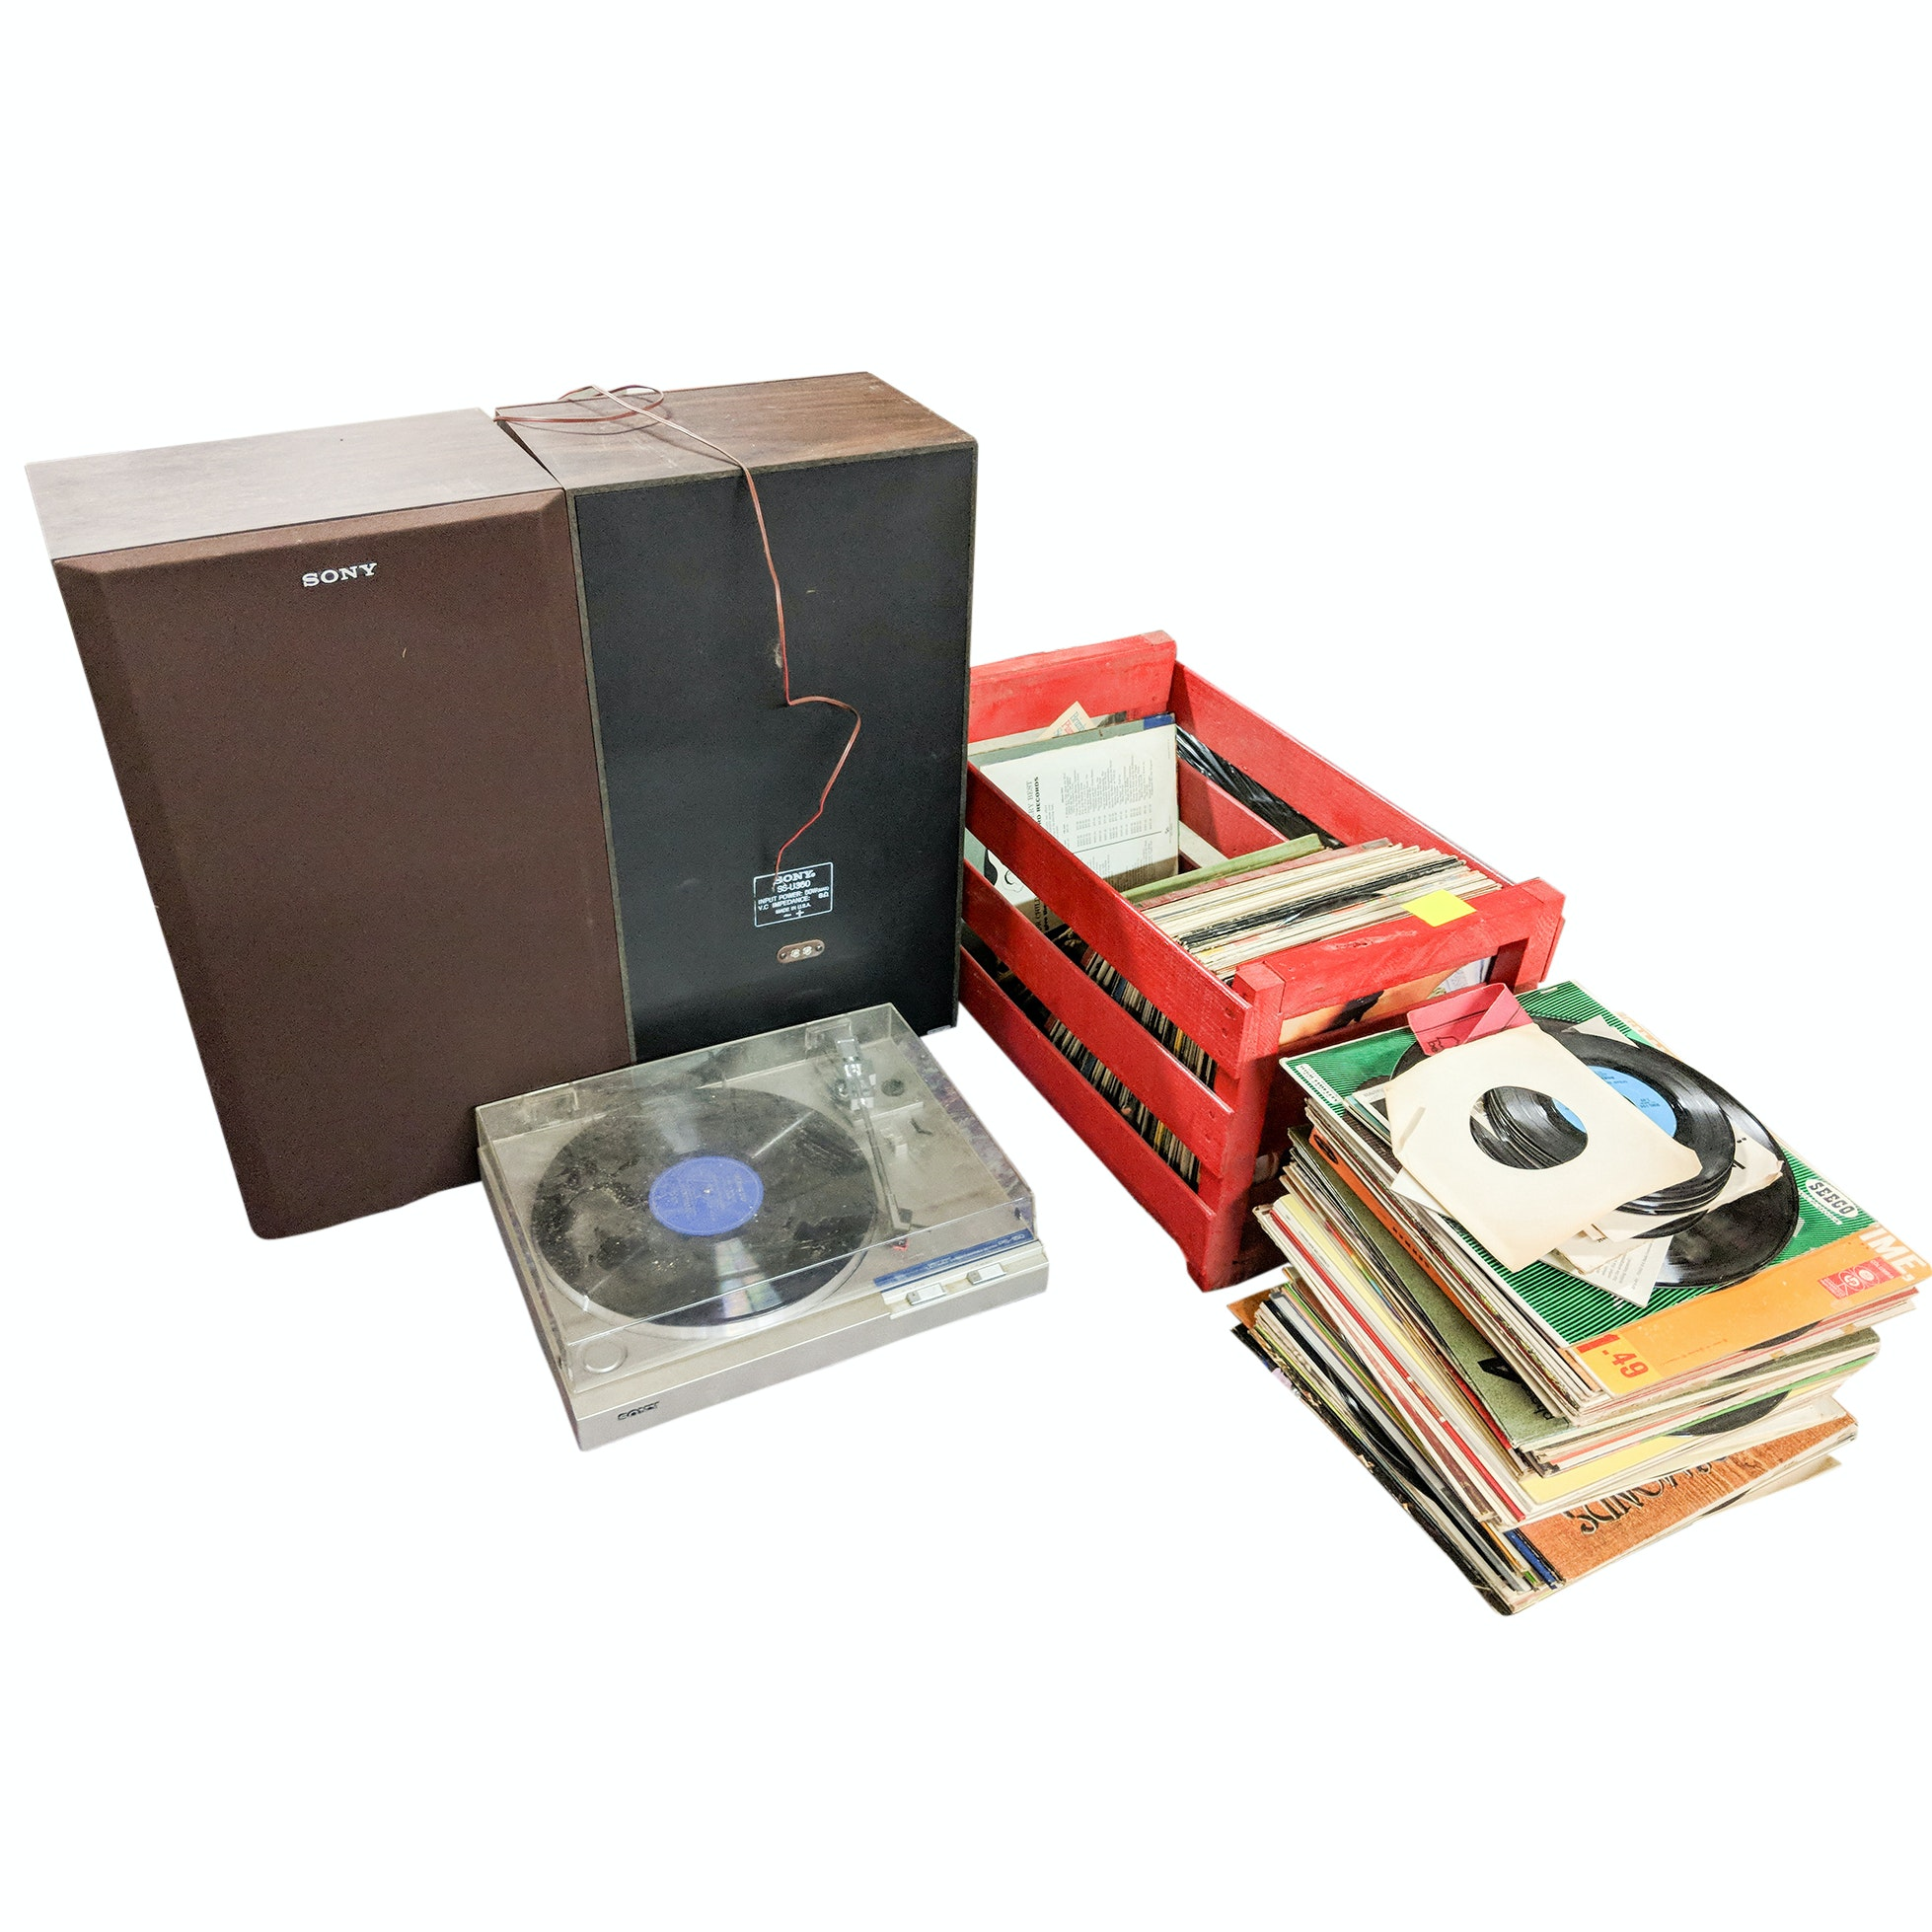 Sony PS-150 Turntable, Speakers and Over 100 Rock and Vinyl Albums